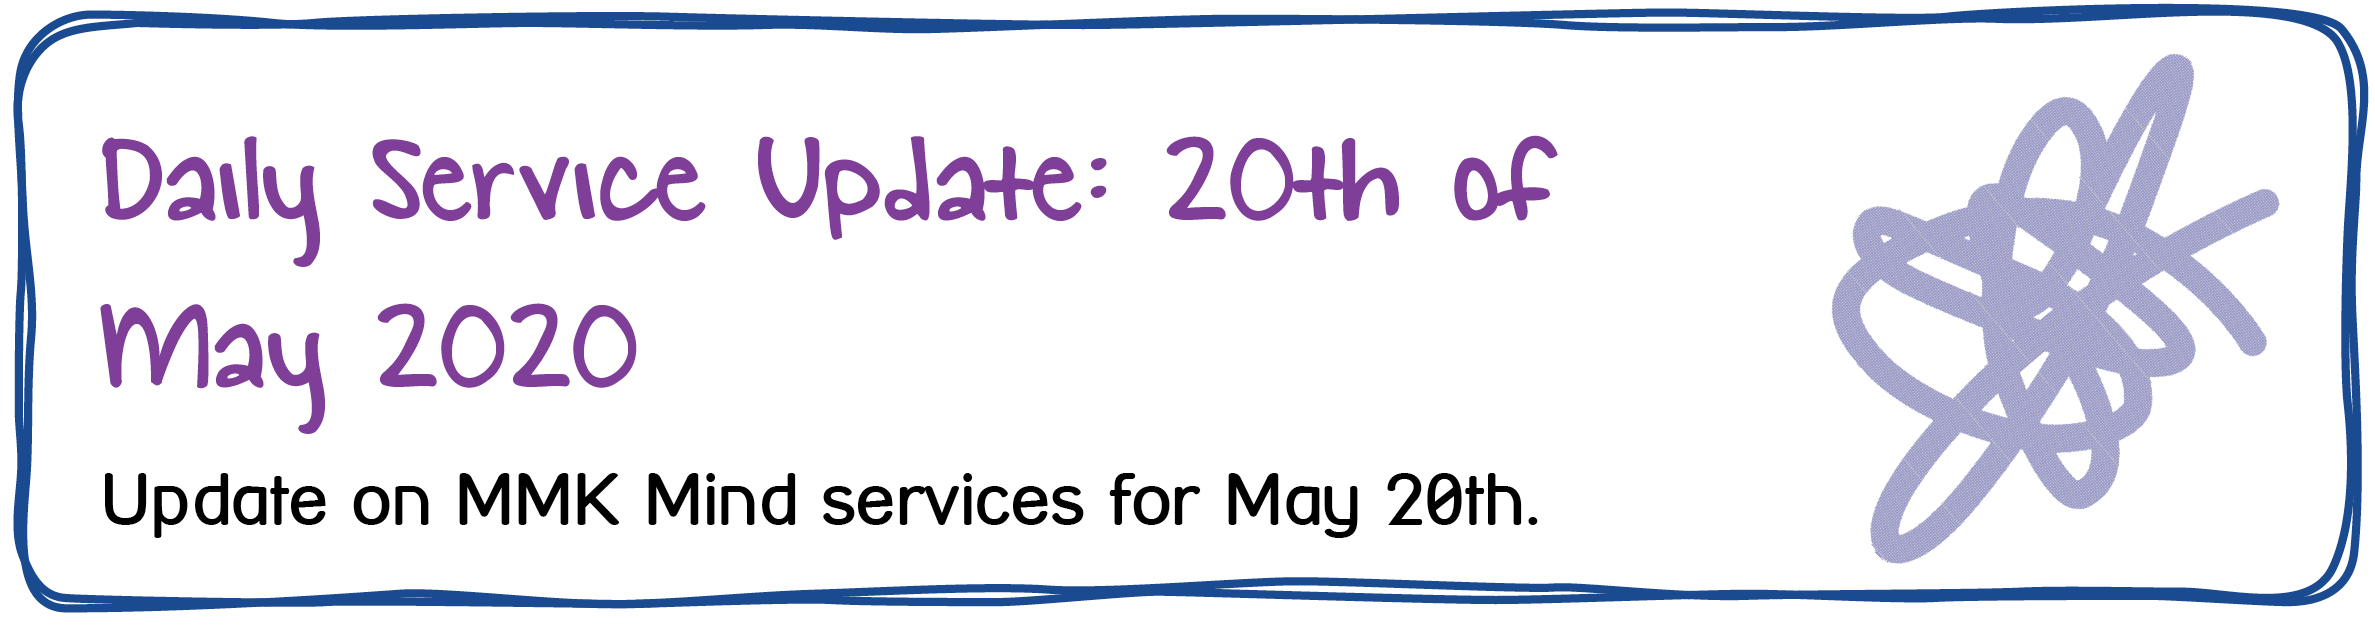 Daily Service Update: 20th of May 2020. Update on MMK Mind services for May 20th.